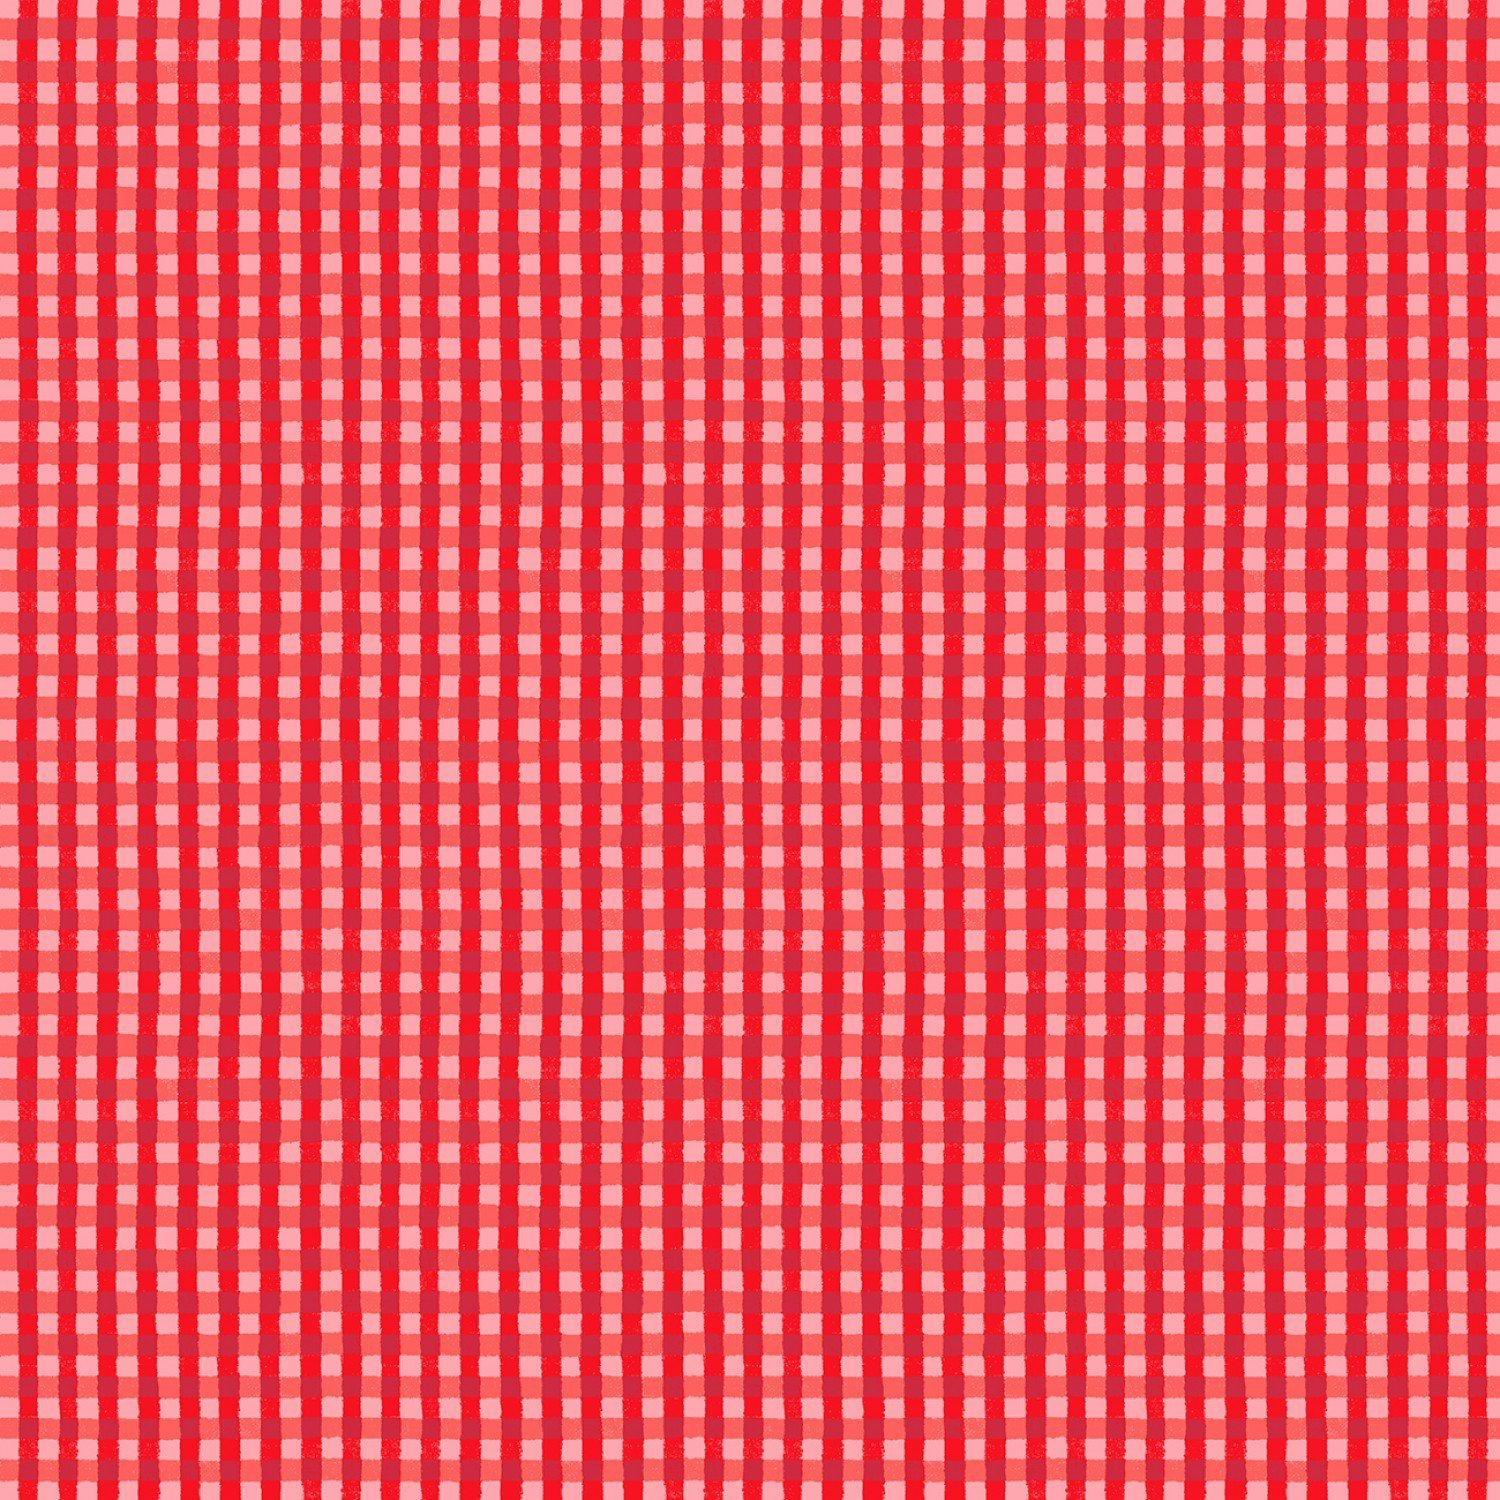 Foust Textiles - Farm Friends - Red Gingham - 52444 A - Red